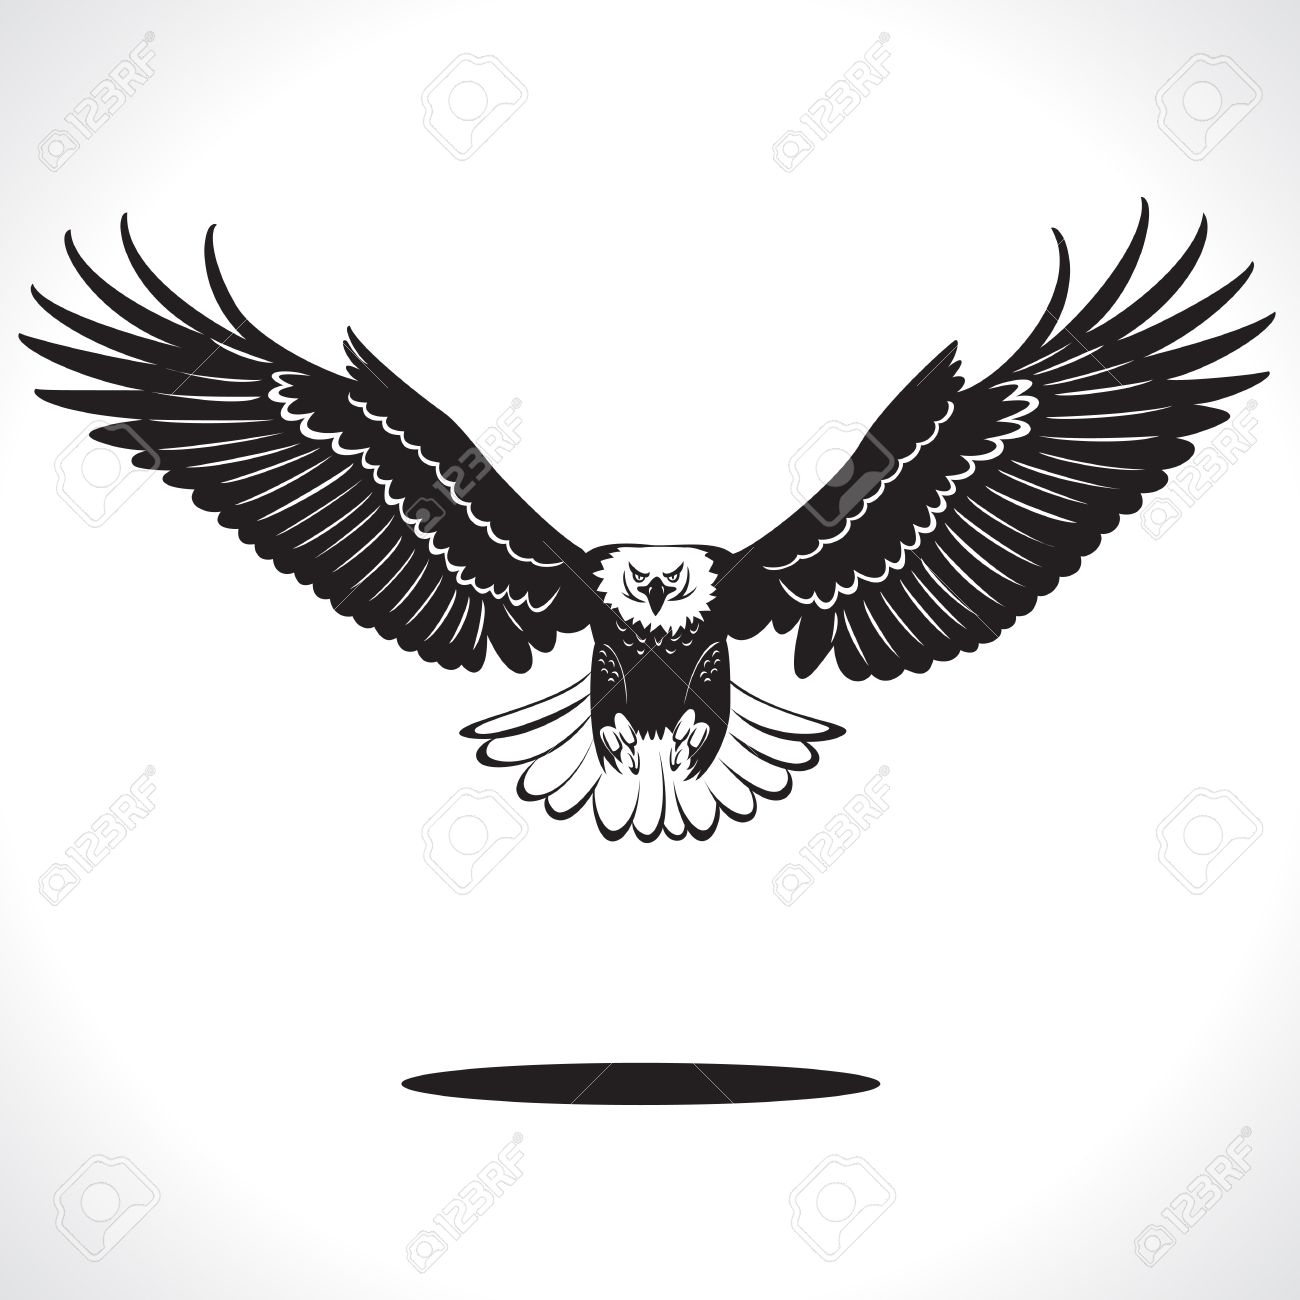 cartoon eagle stock photos royalty free cartoon eagle images and